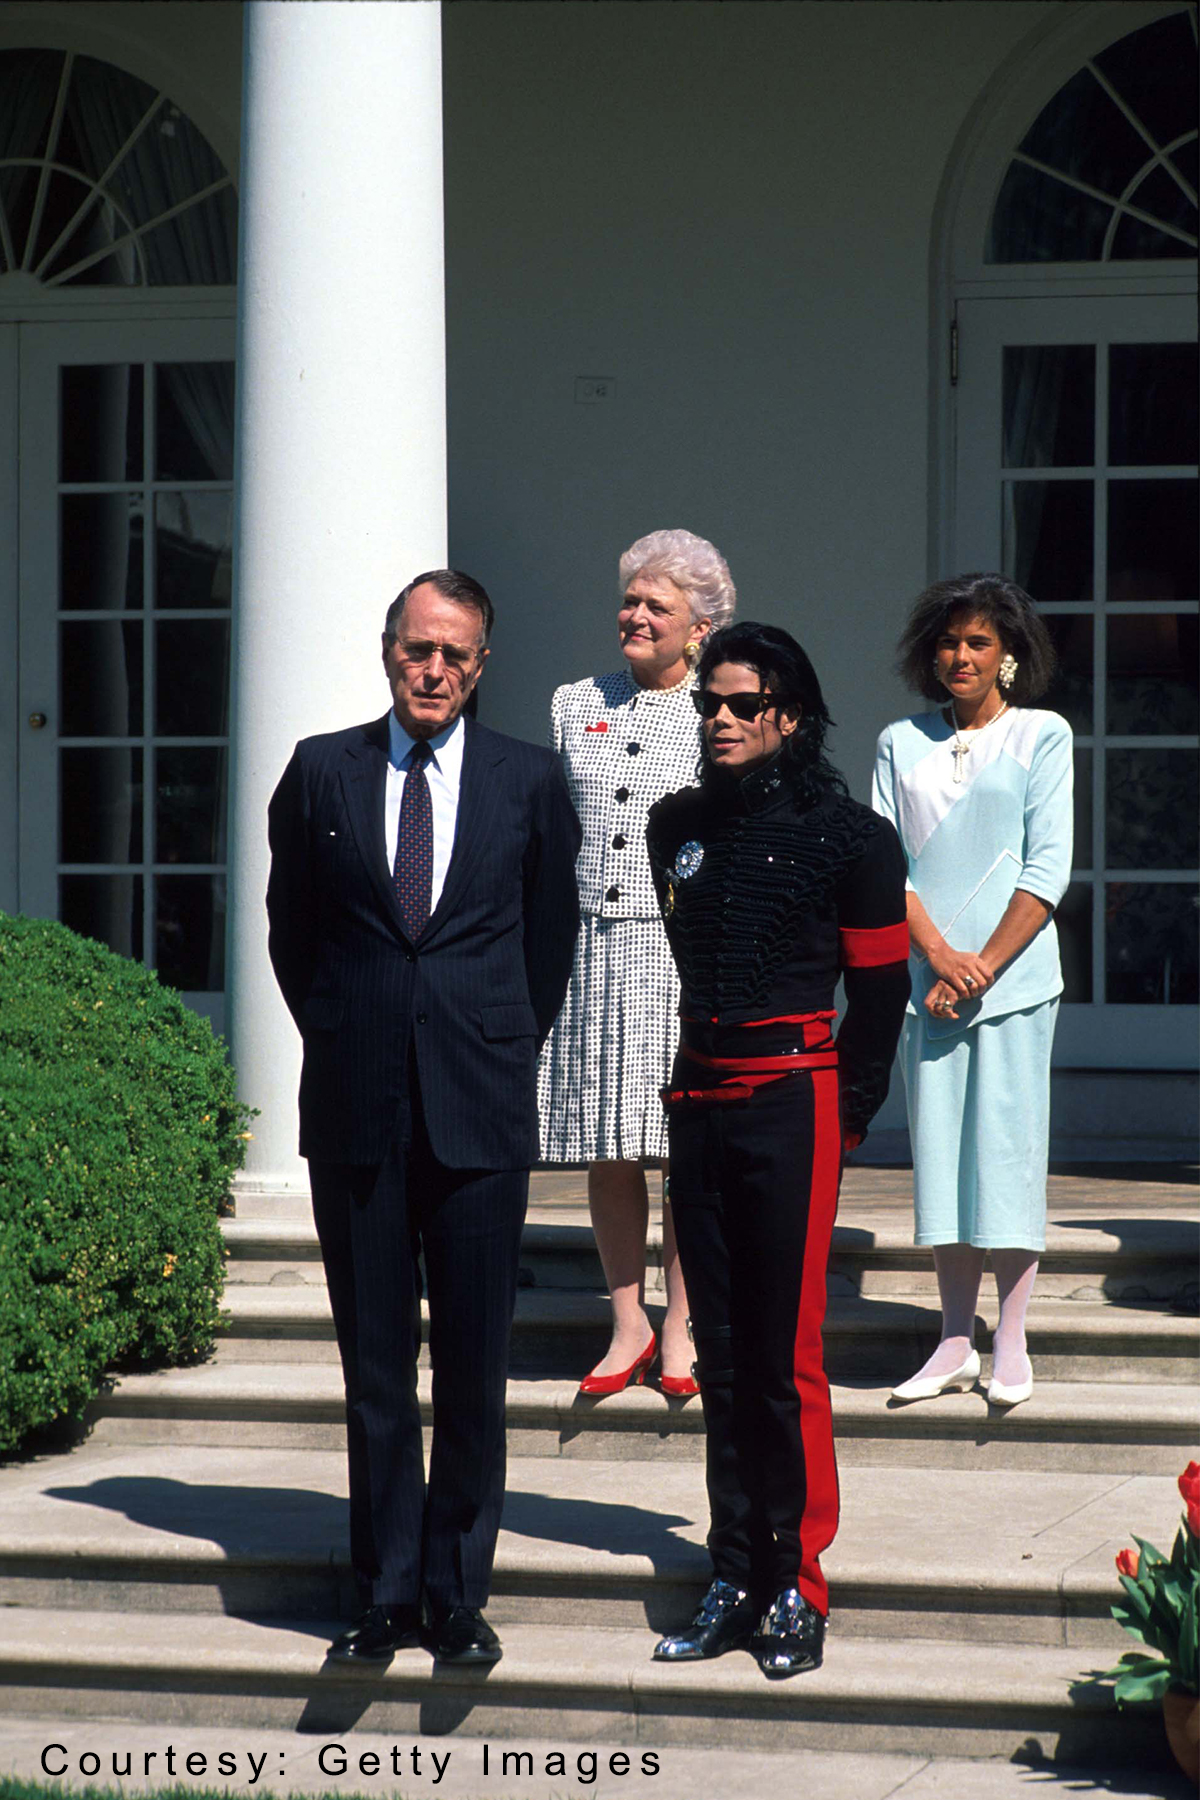 Michael Jackson honored as Artist of the Decade at White House April 5, 1990 by President George H.W. Bush and First Lady Barbara Bush